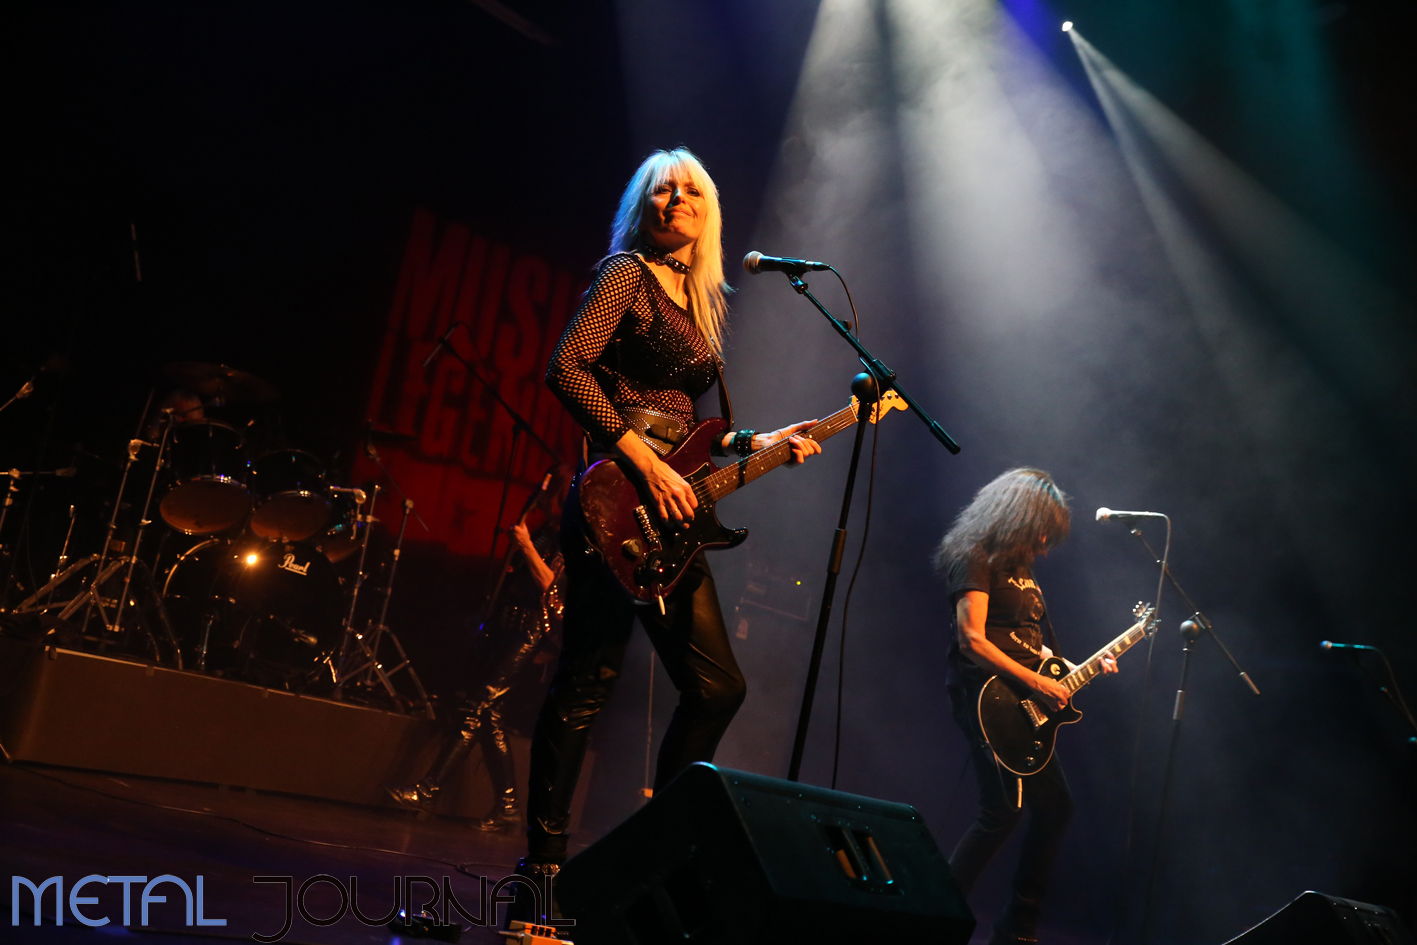 girlschool - metal journal 2018 pic 8